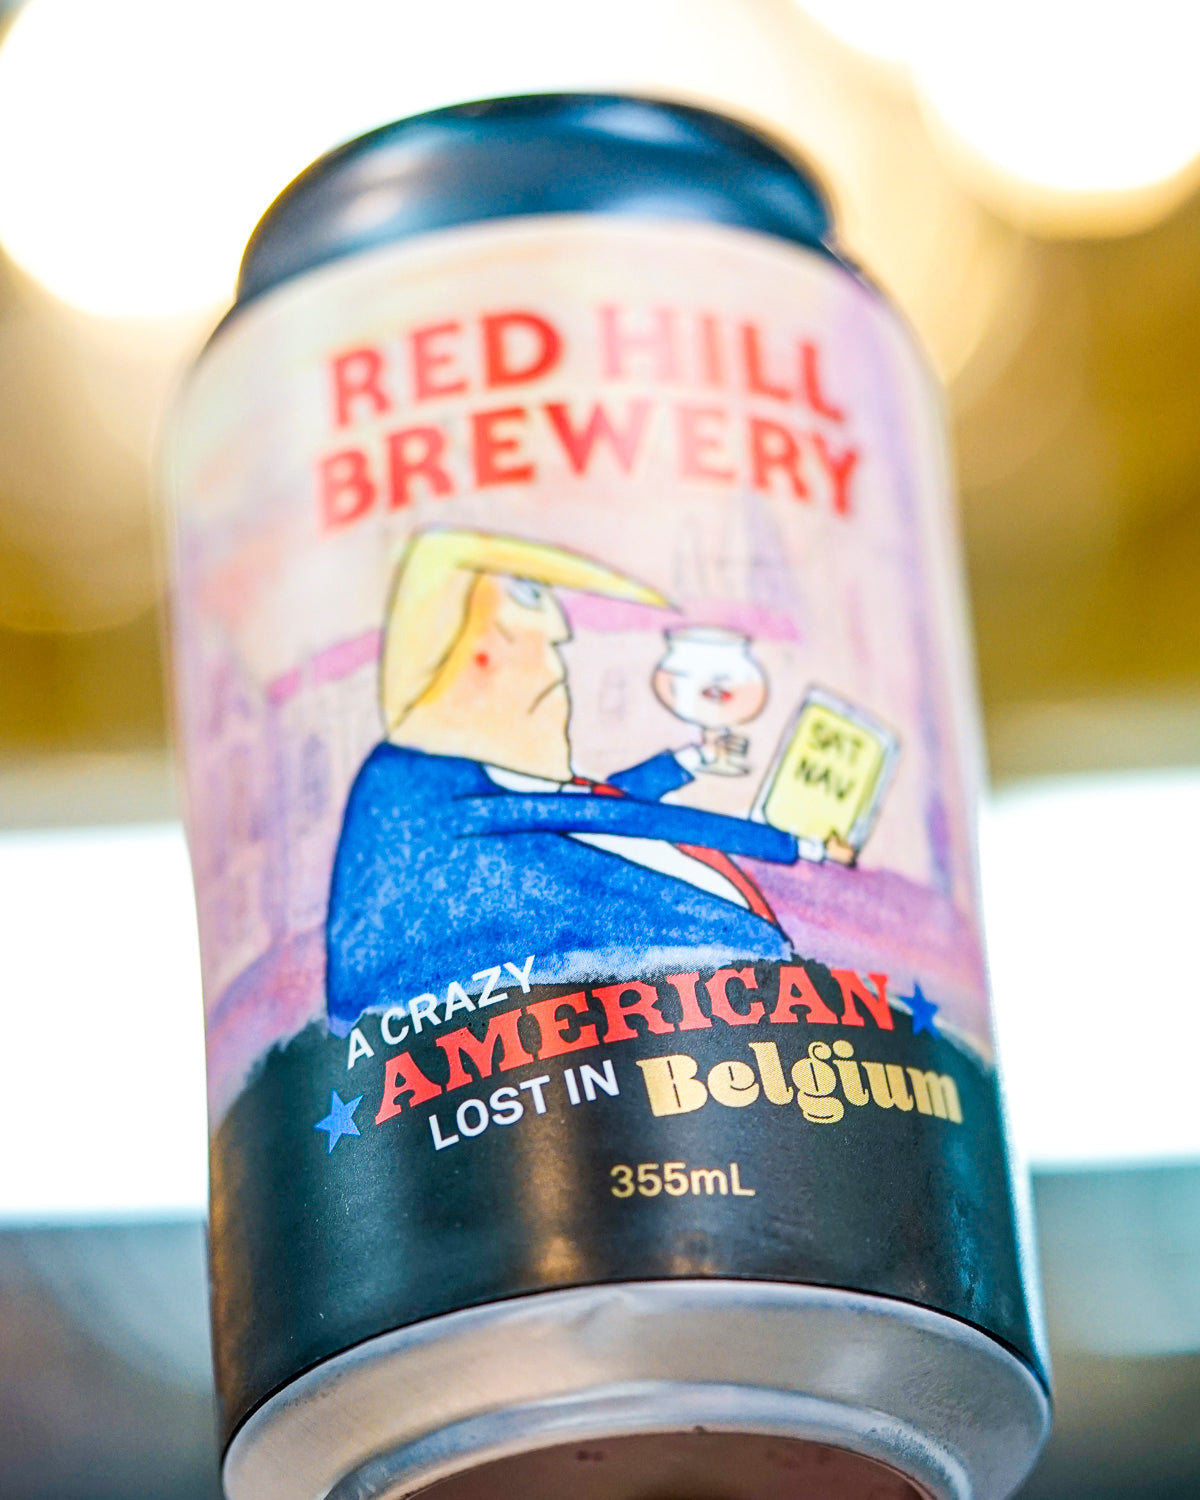 Red Hill Brewery 'A Crazy American Lost In Belgium' Strong Belgian Ale 355mL